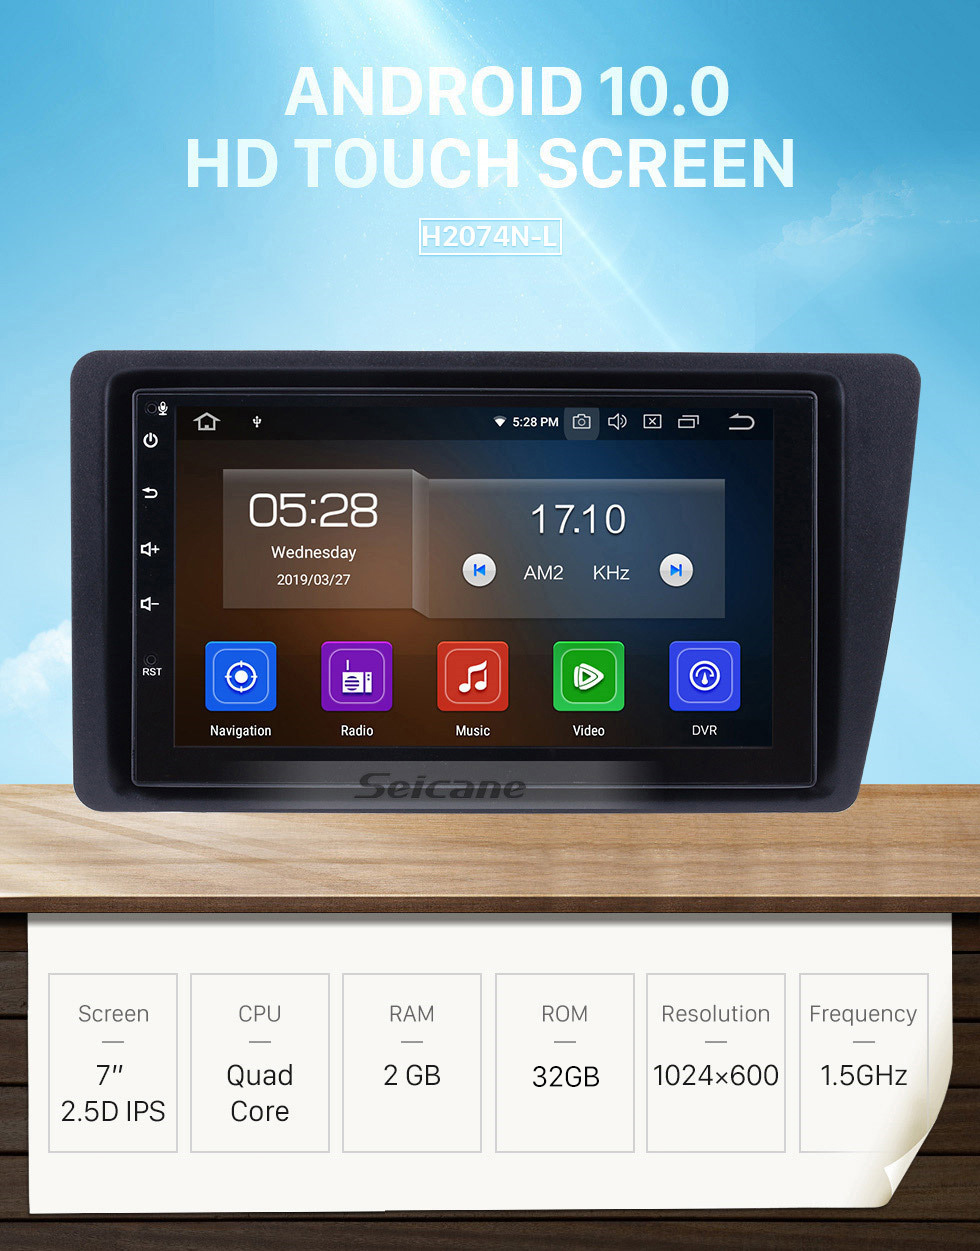 Seicane 7 inch Android 10.0 Car Stereo GPS Navigation System for 2001-2005 Honda Civic with WiFi Bluetooth 1080P HD Touchscreen AUX FM support Mirror Link OBD2 SWC